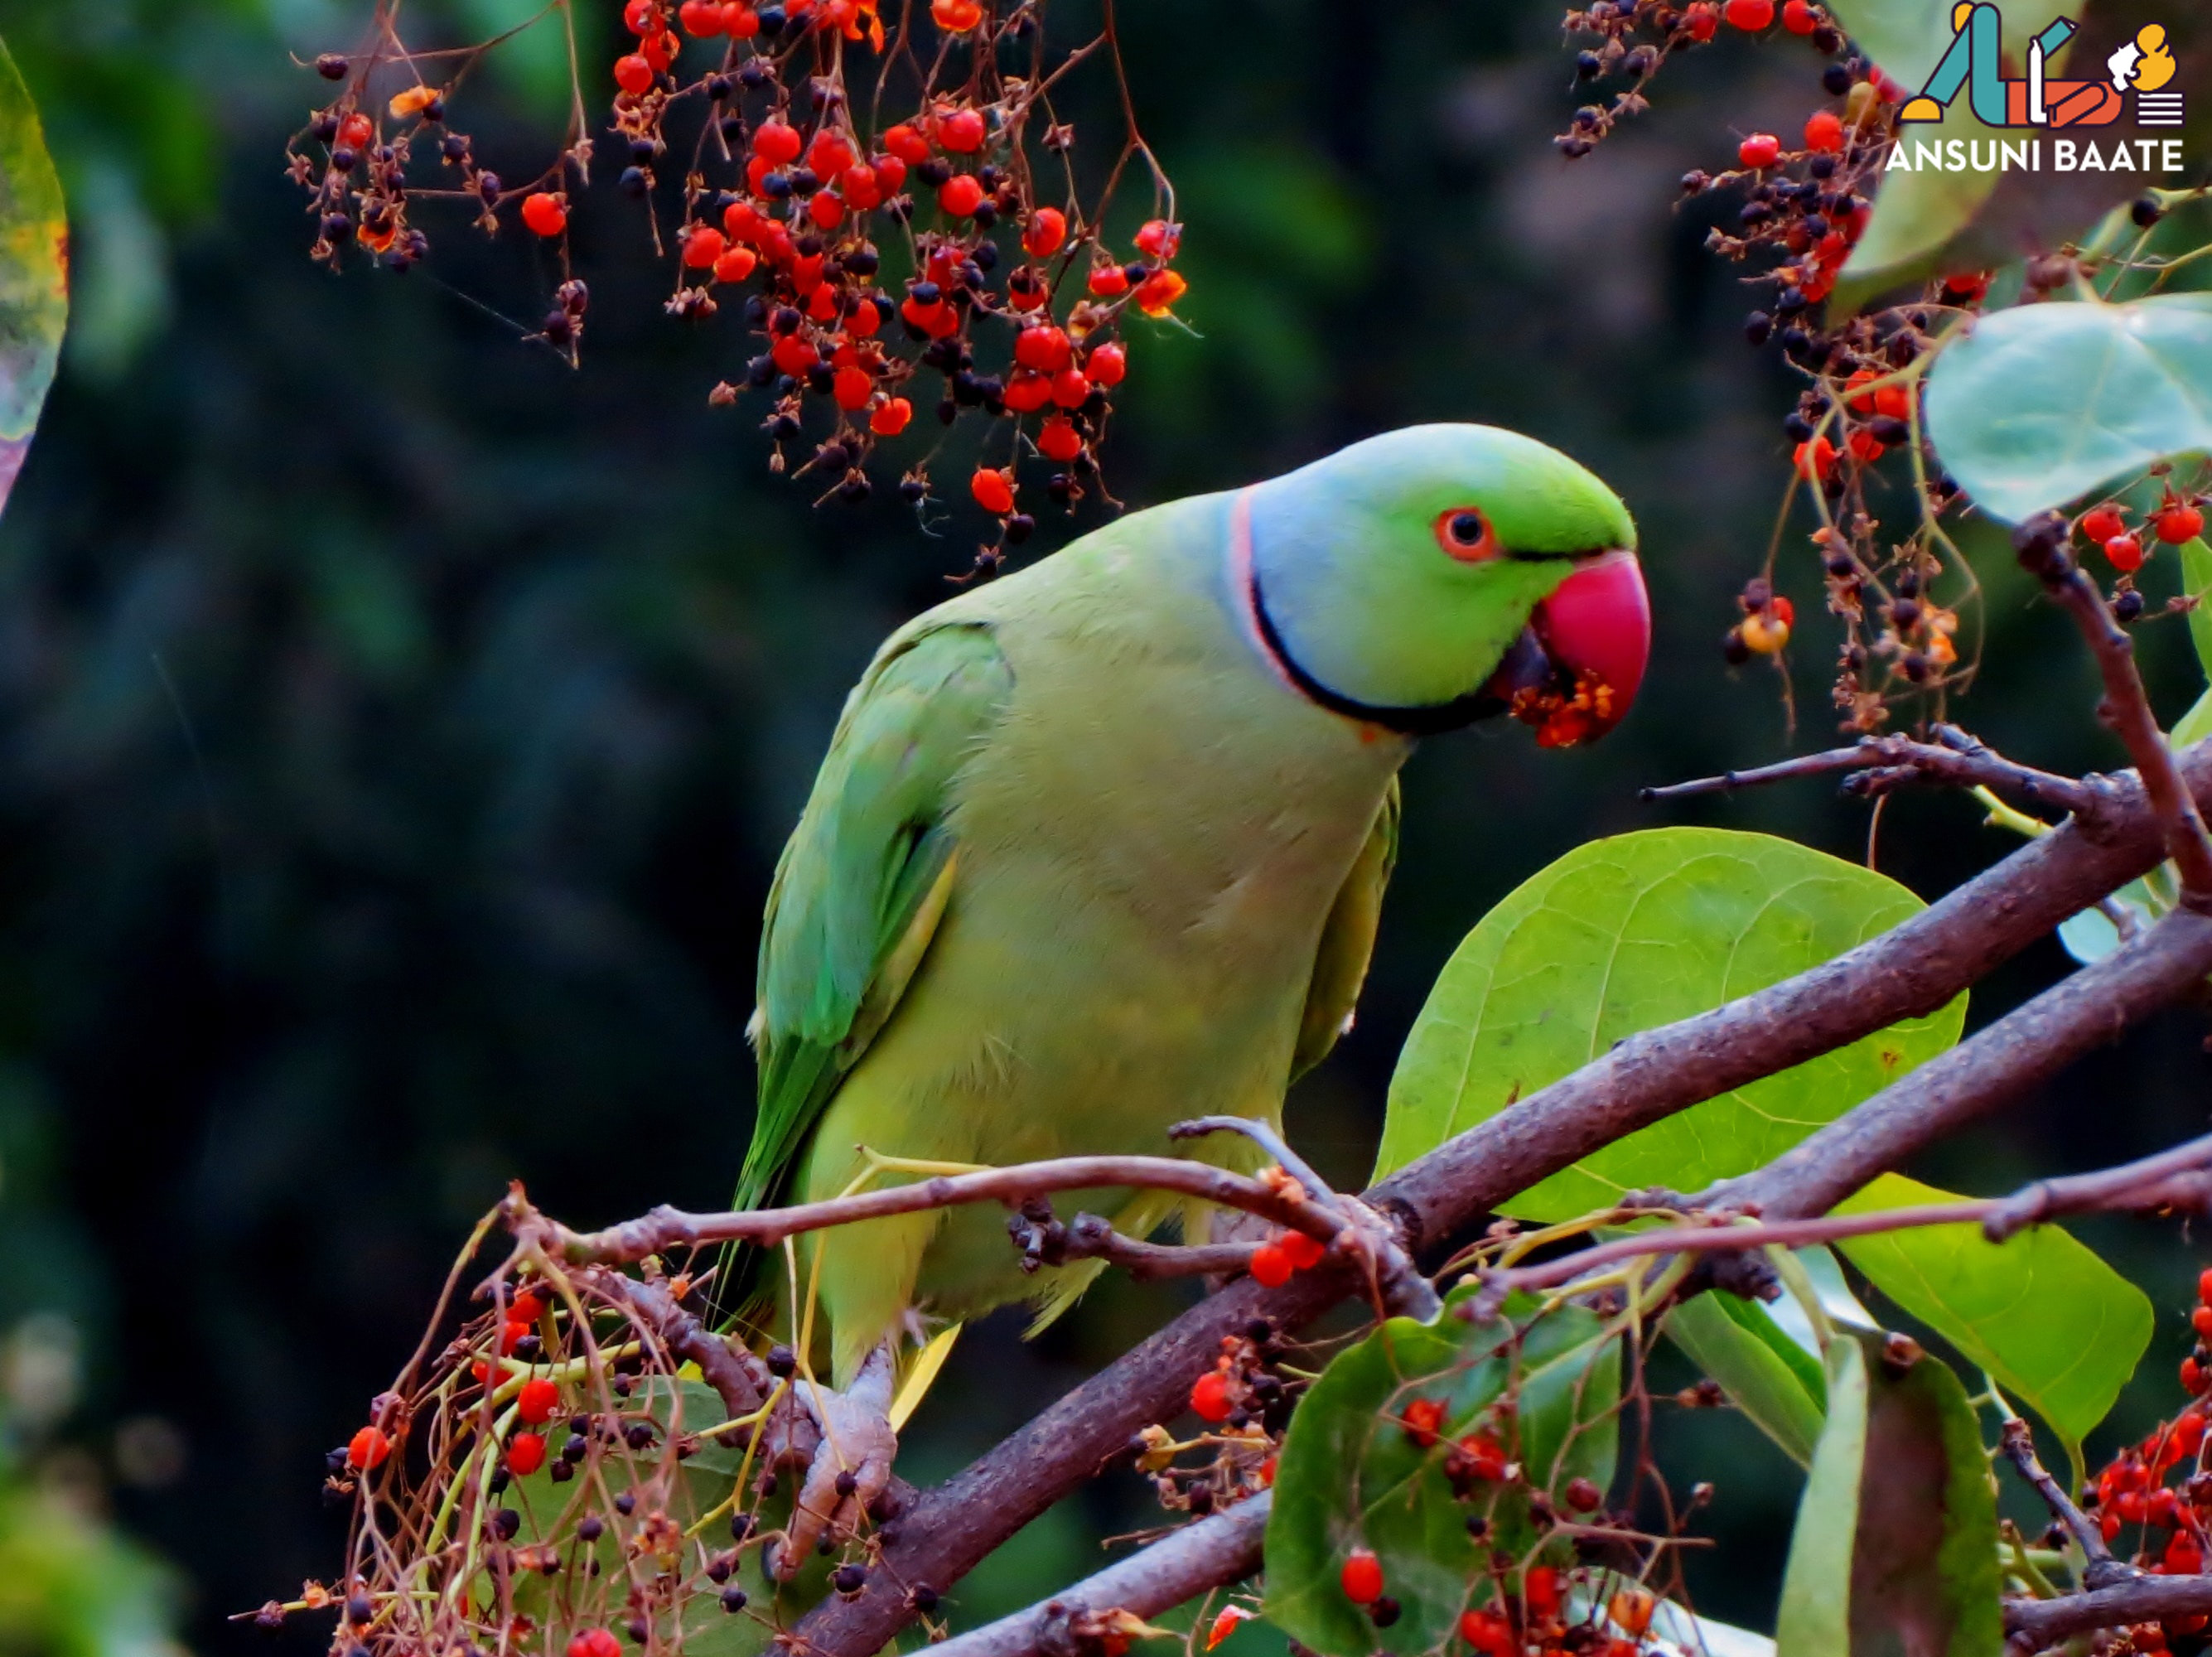 Parrots Pictures HD Photo Wallpaper Free Images Download - तोता की फोटो इमेज वॉलपेपर गैलरी फ्री डाउनलोड